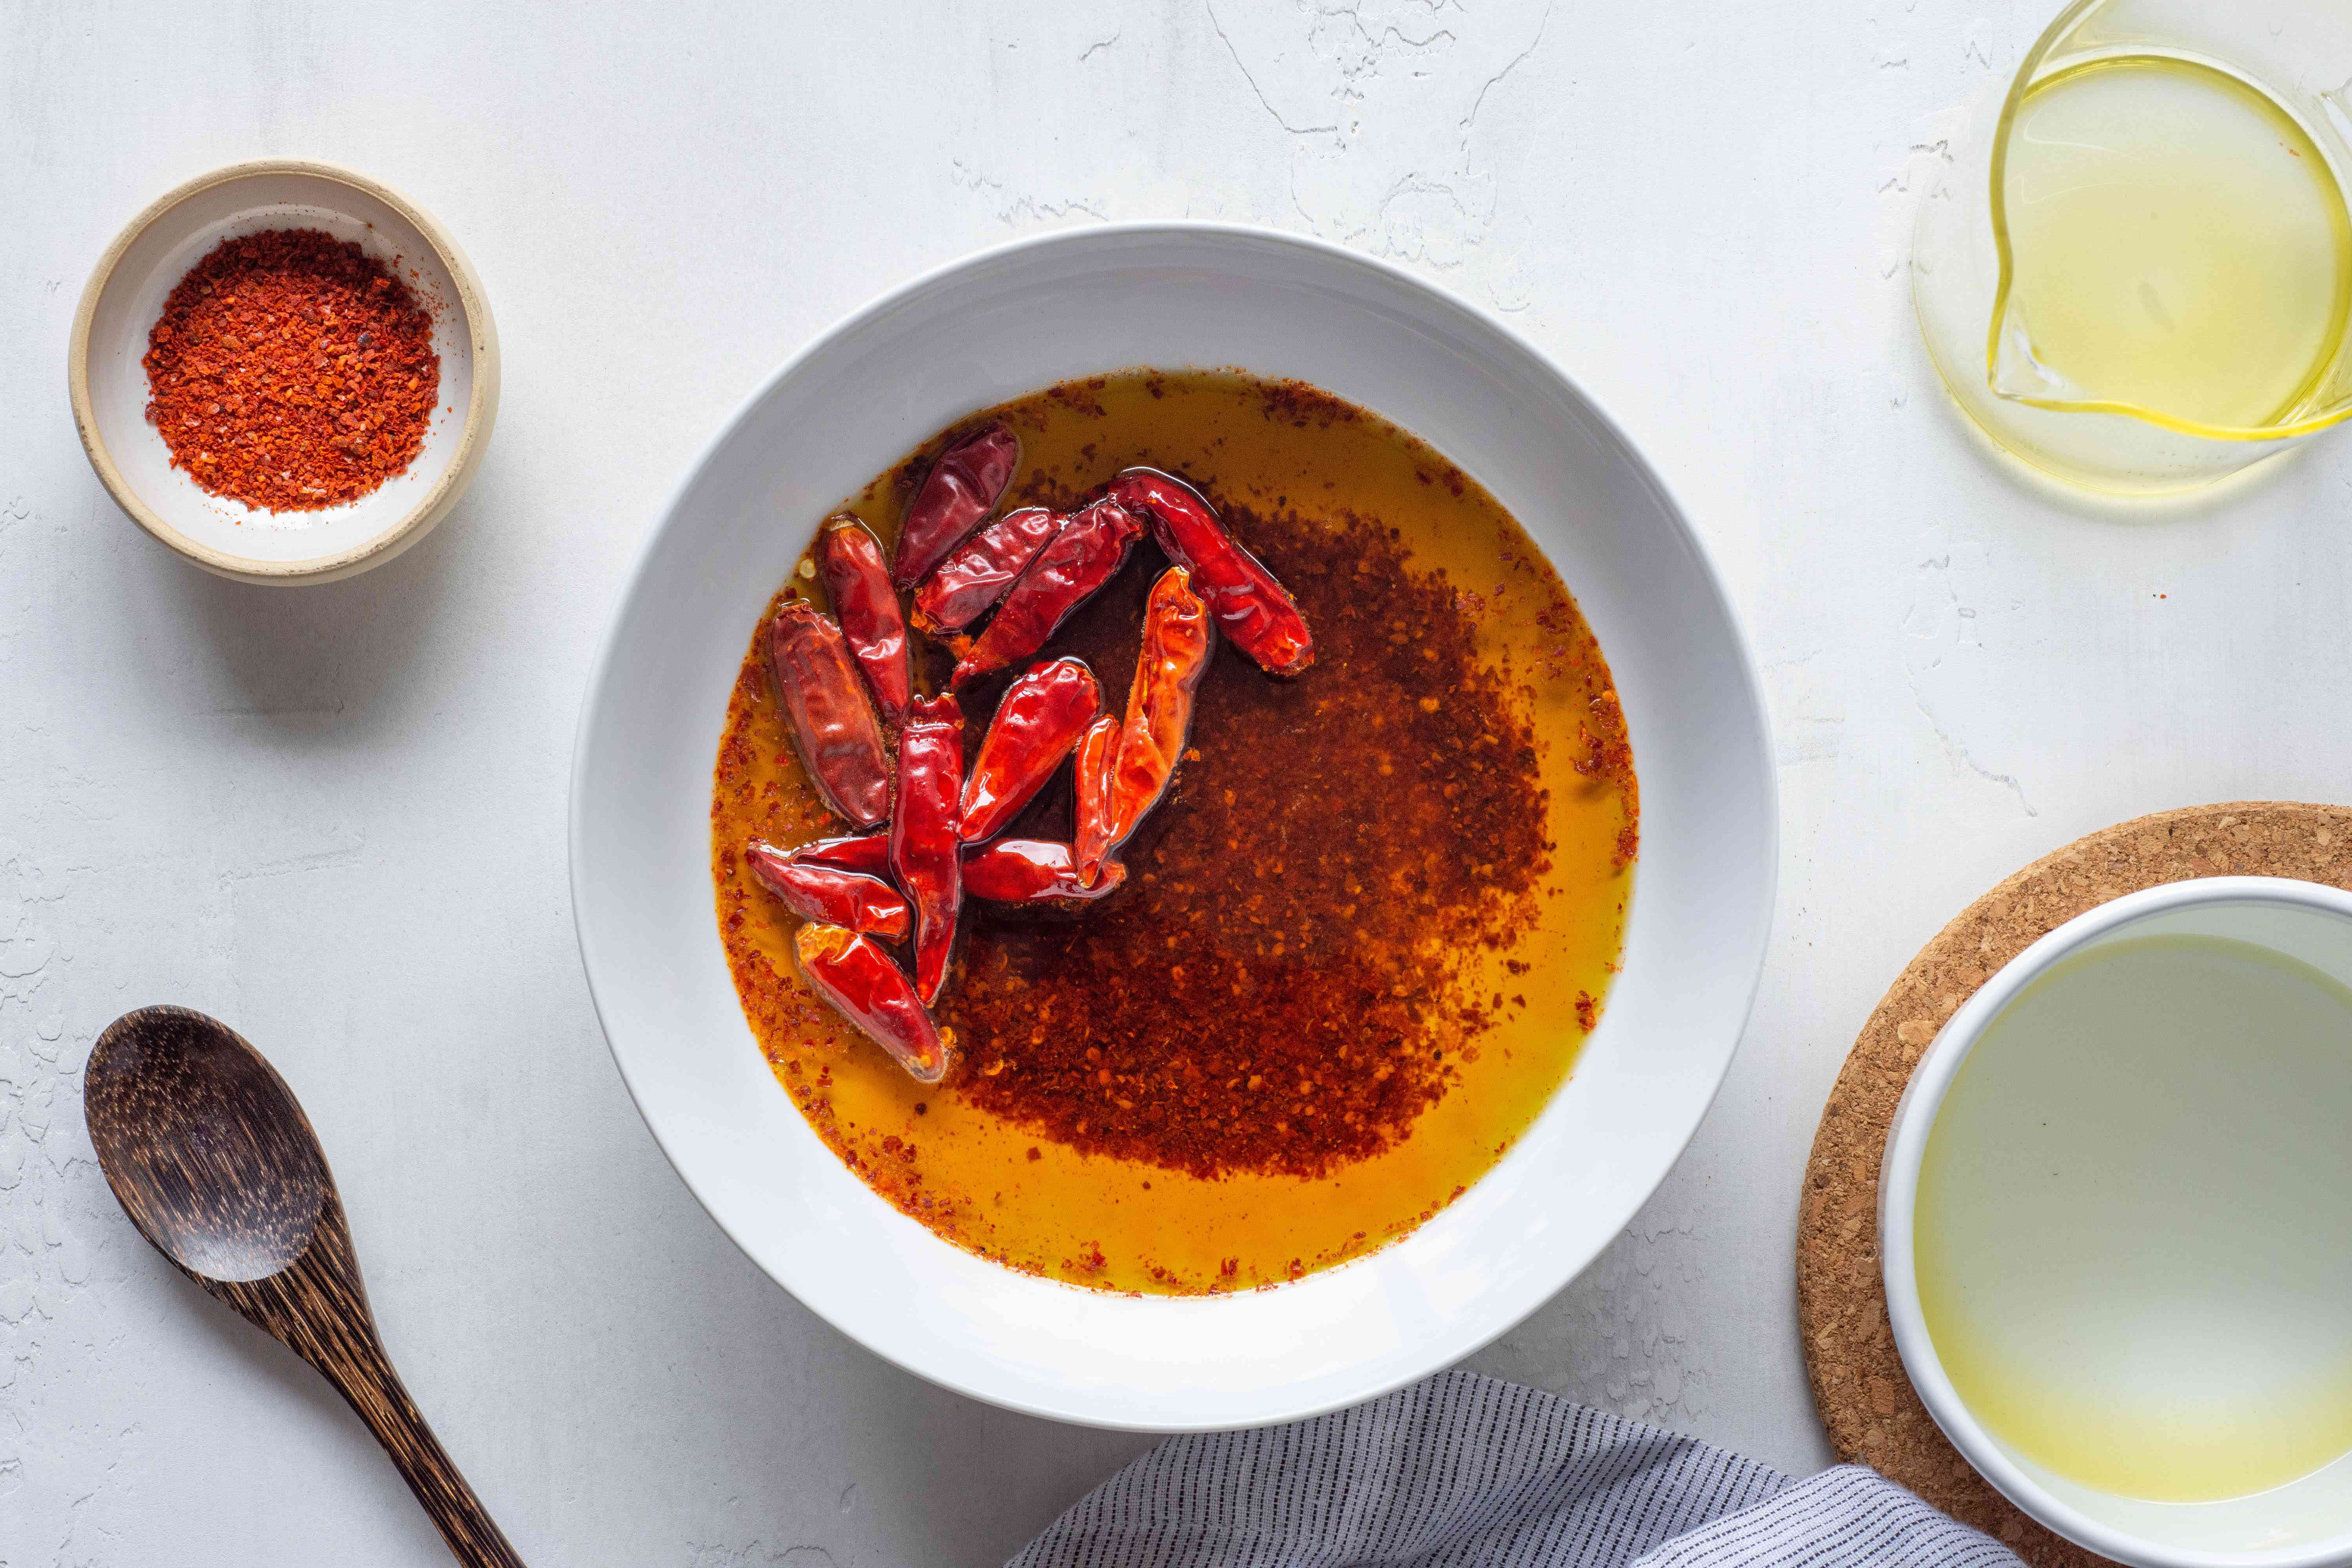 olive oil, crushed and whole Chiles in a white bowl